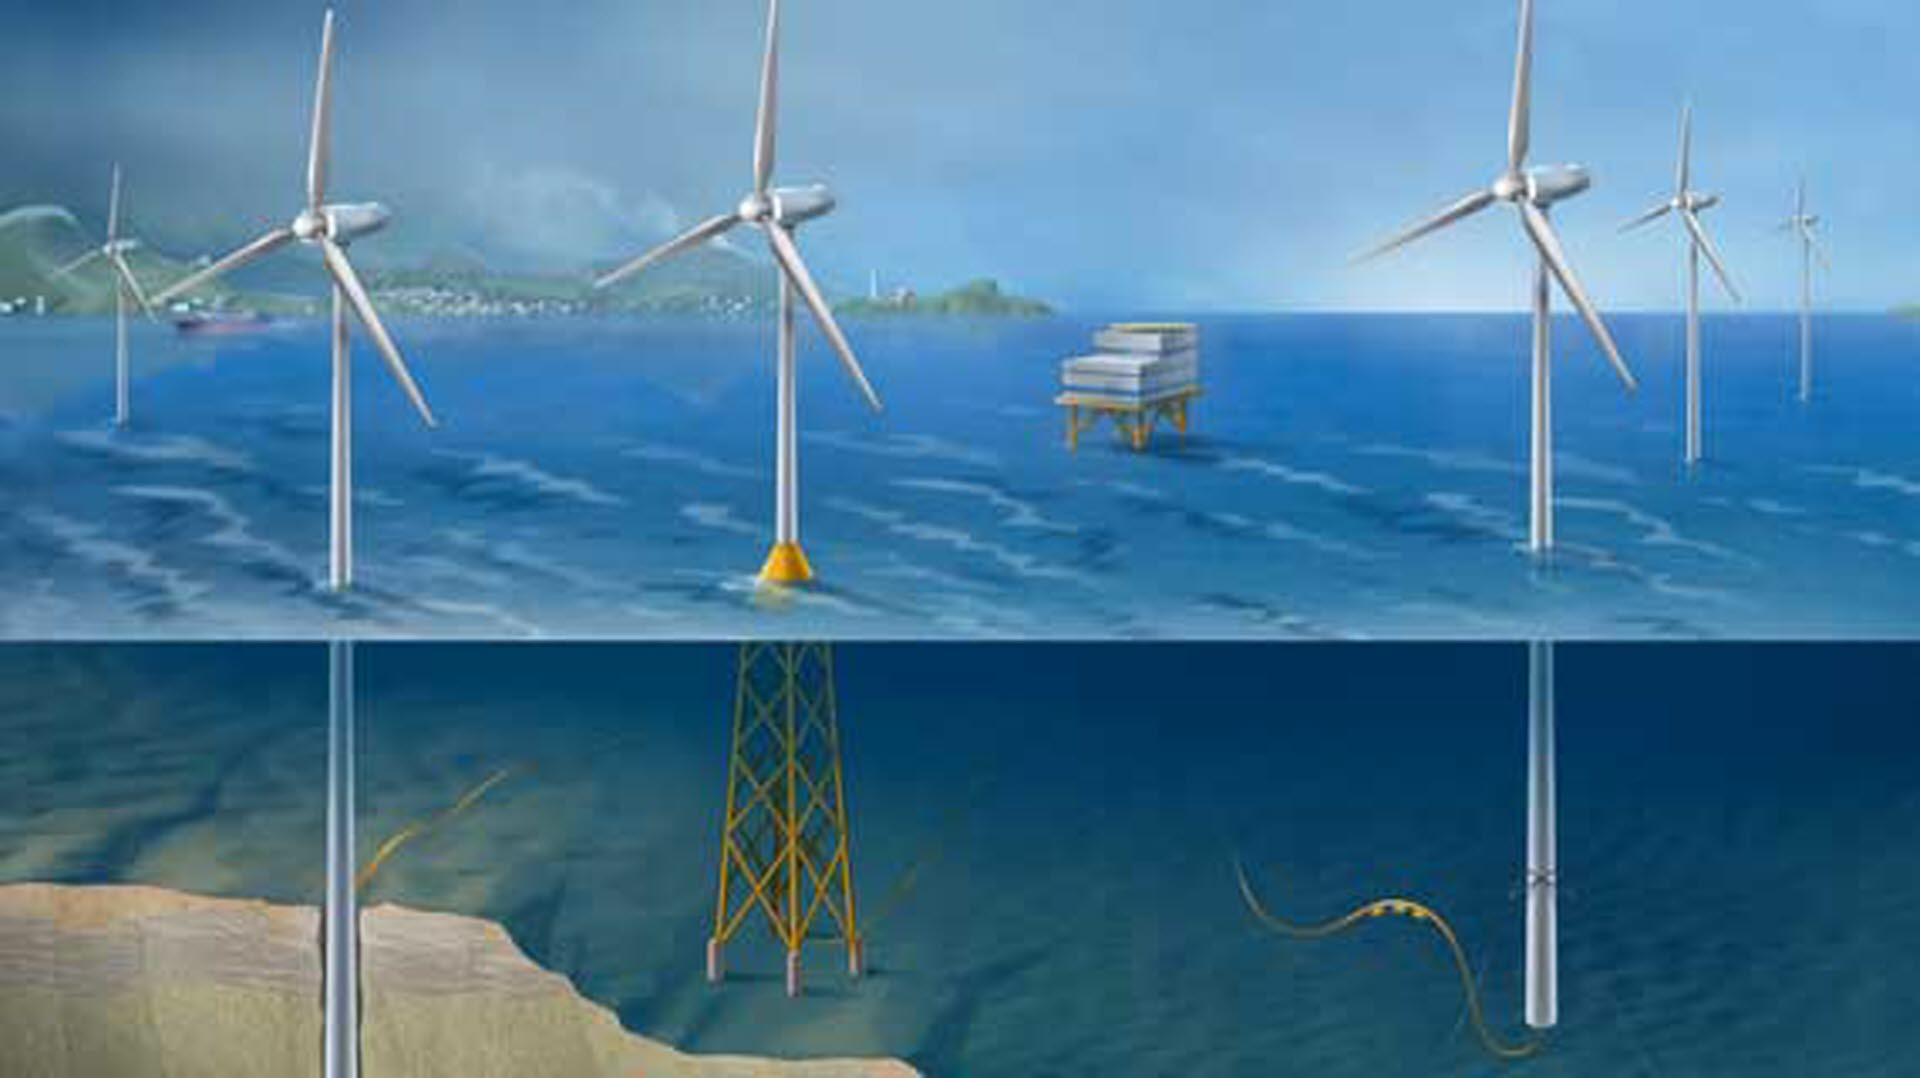 Cyprus might get its first floating wind farm